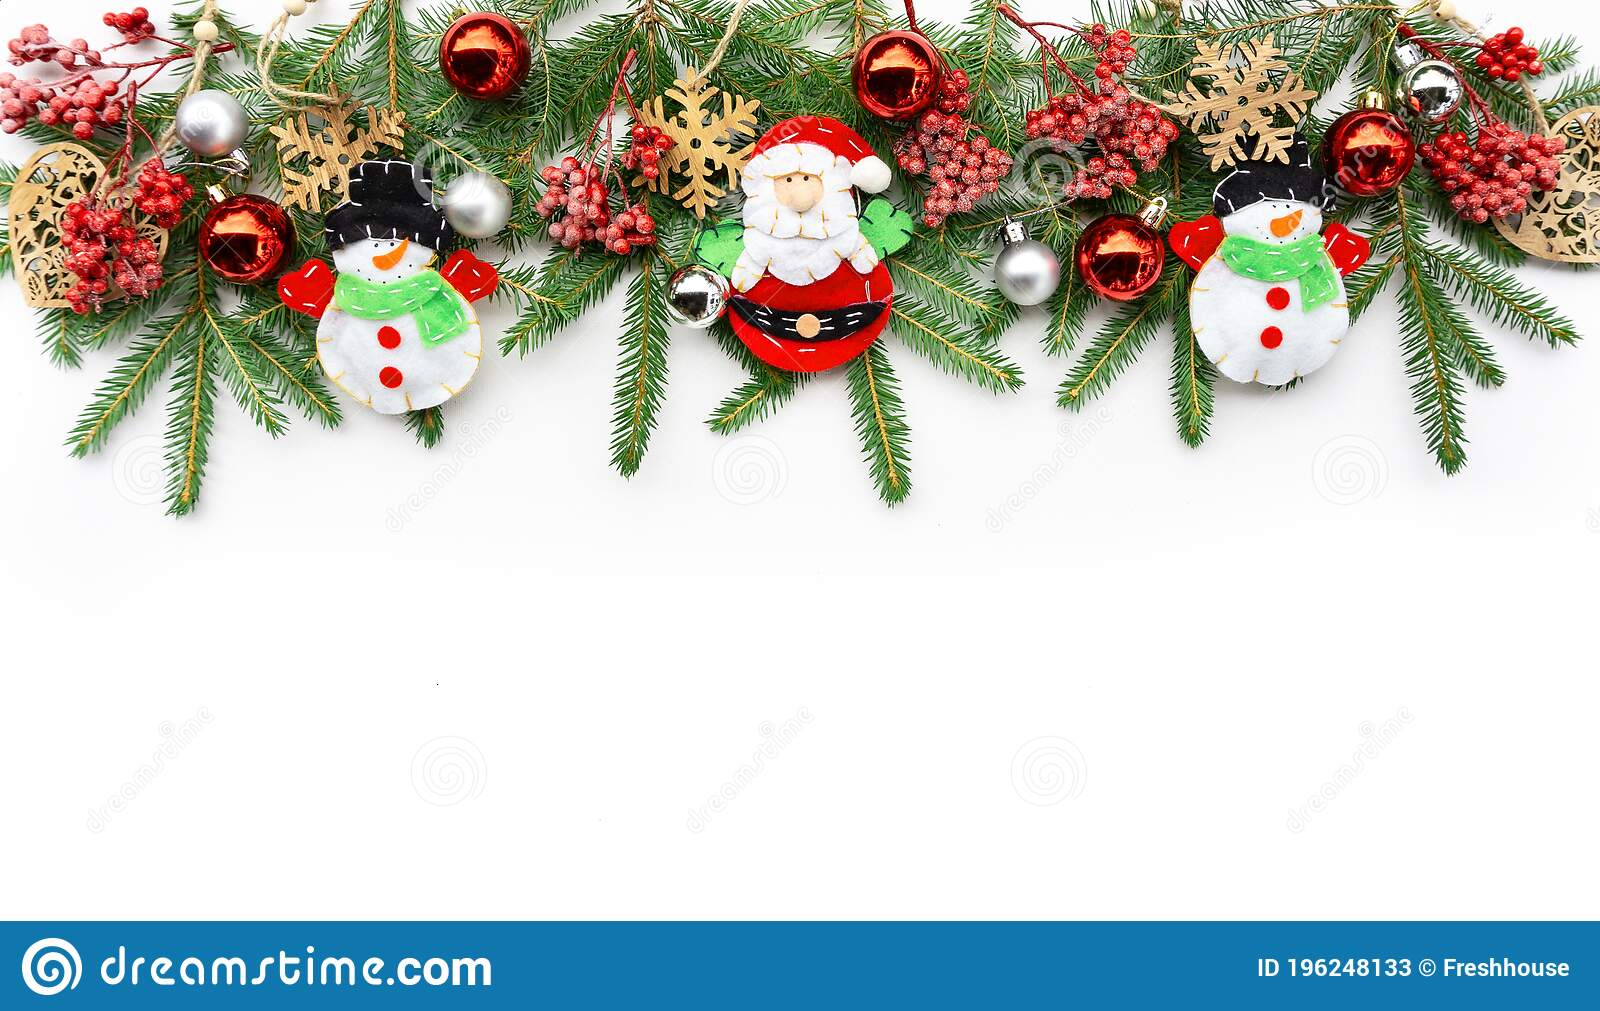 Merry Christmas Horizontal Banner Christmas Garland Of Fir Branches Christmas Tree Decorations And Baubles Design Template For Stock Image Image Of Mock Noel 196248133